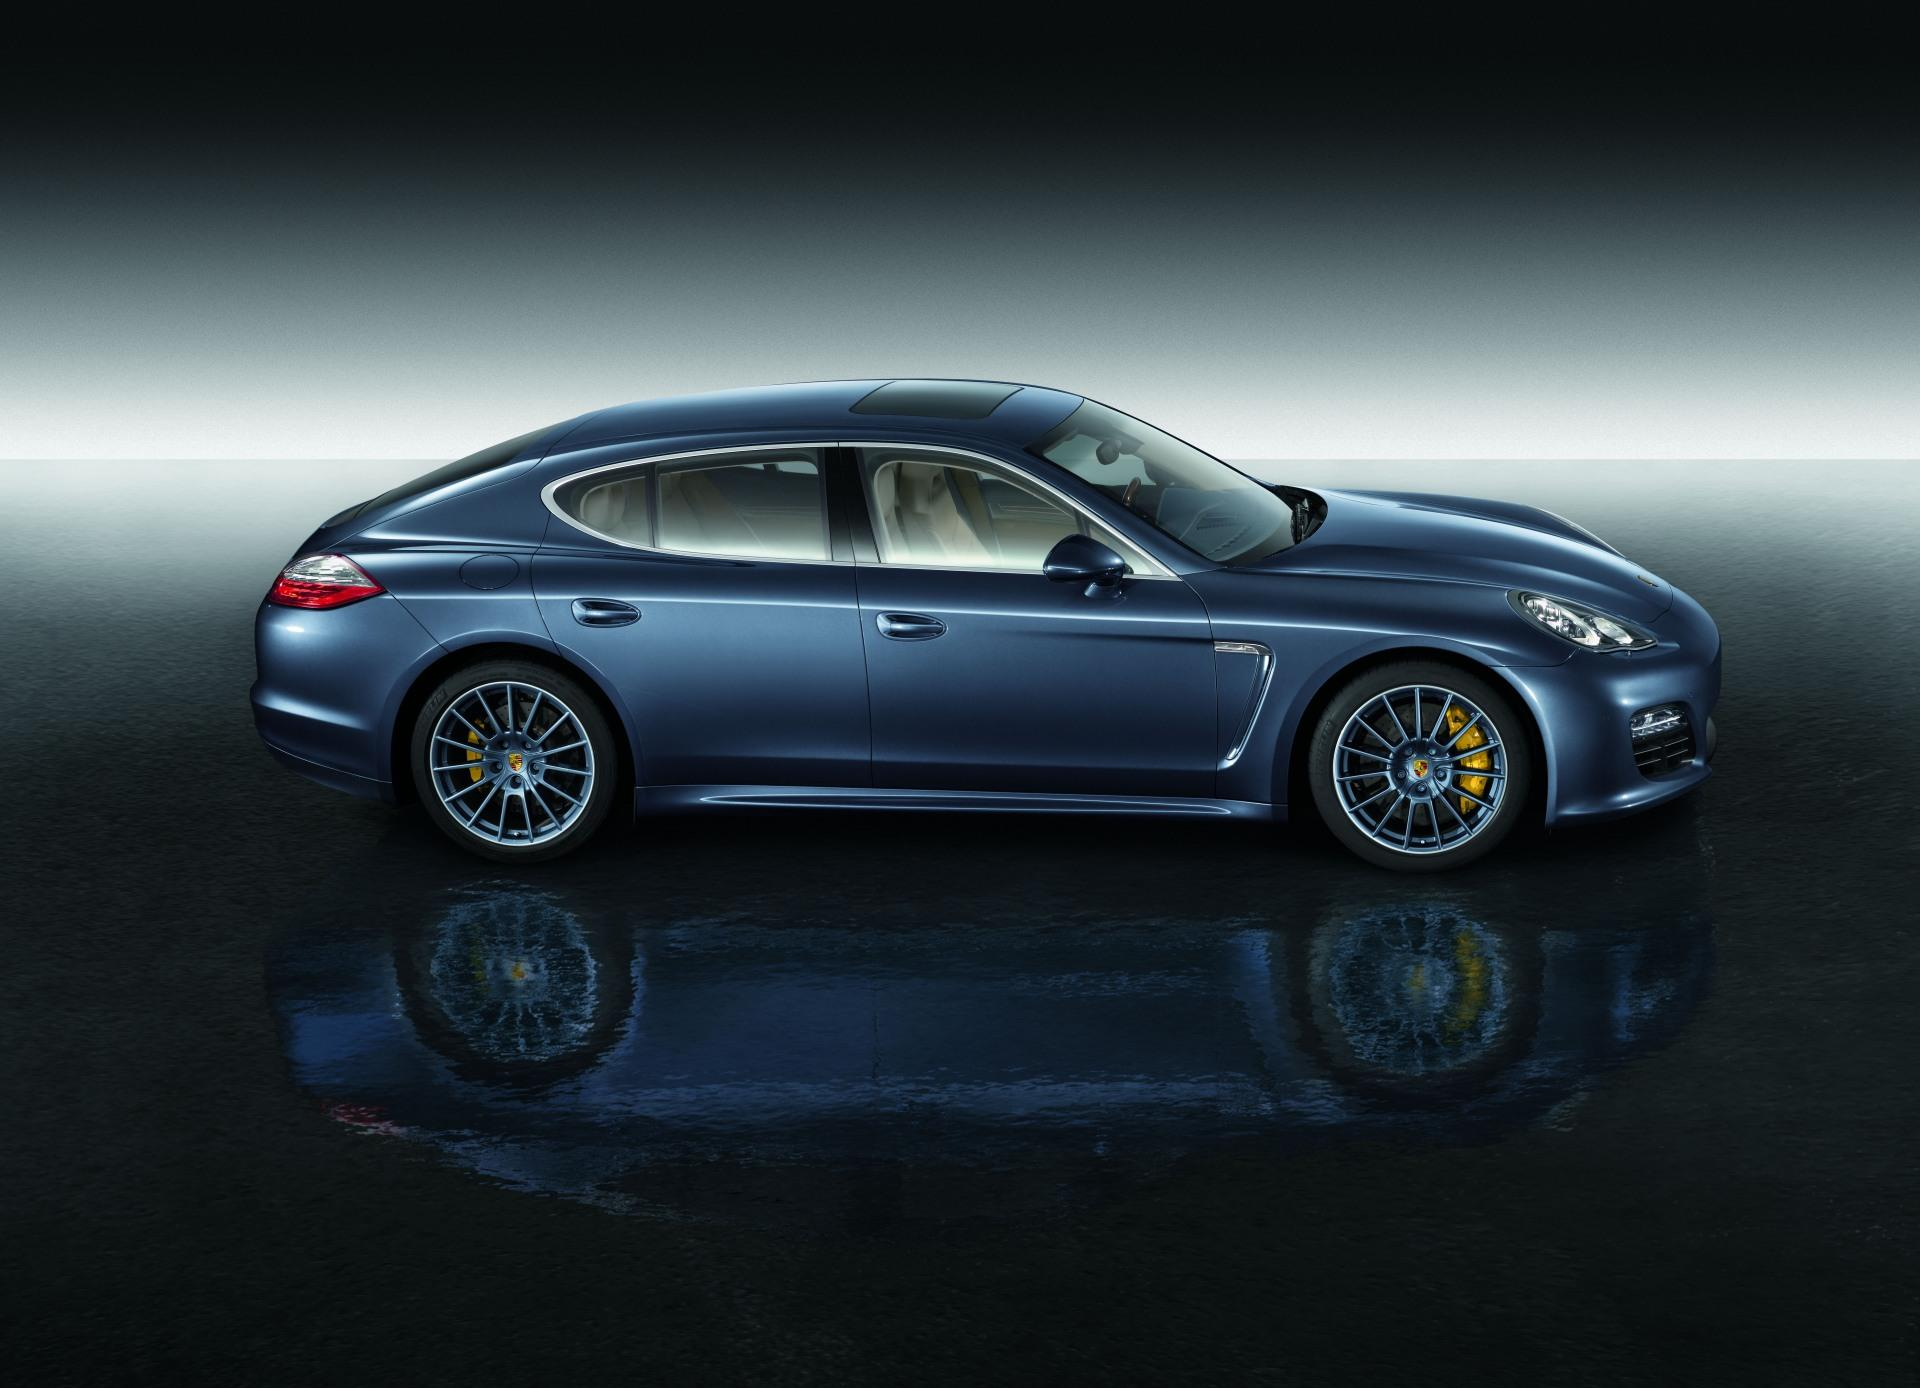 2011 Porsche Panamera Personalization Program News And Information